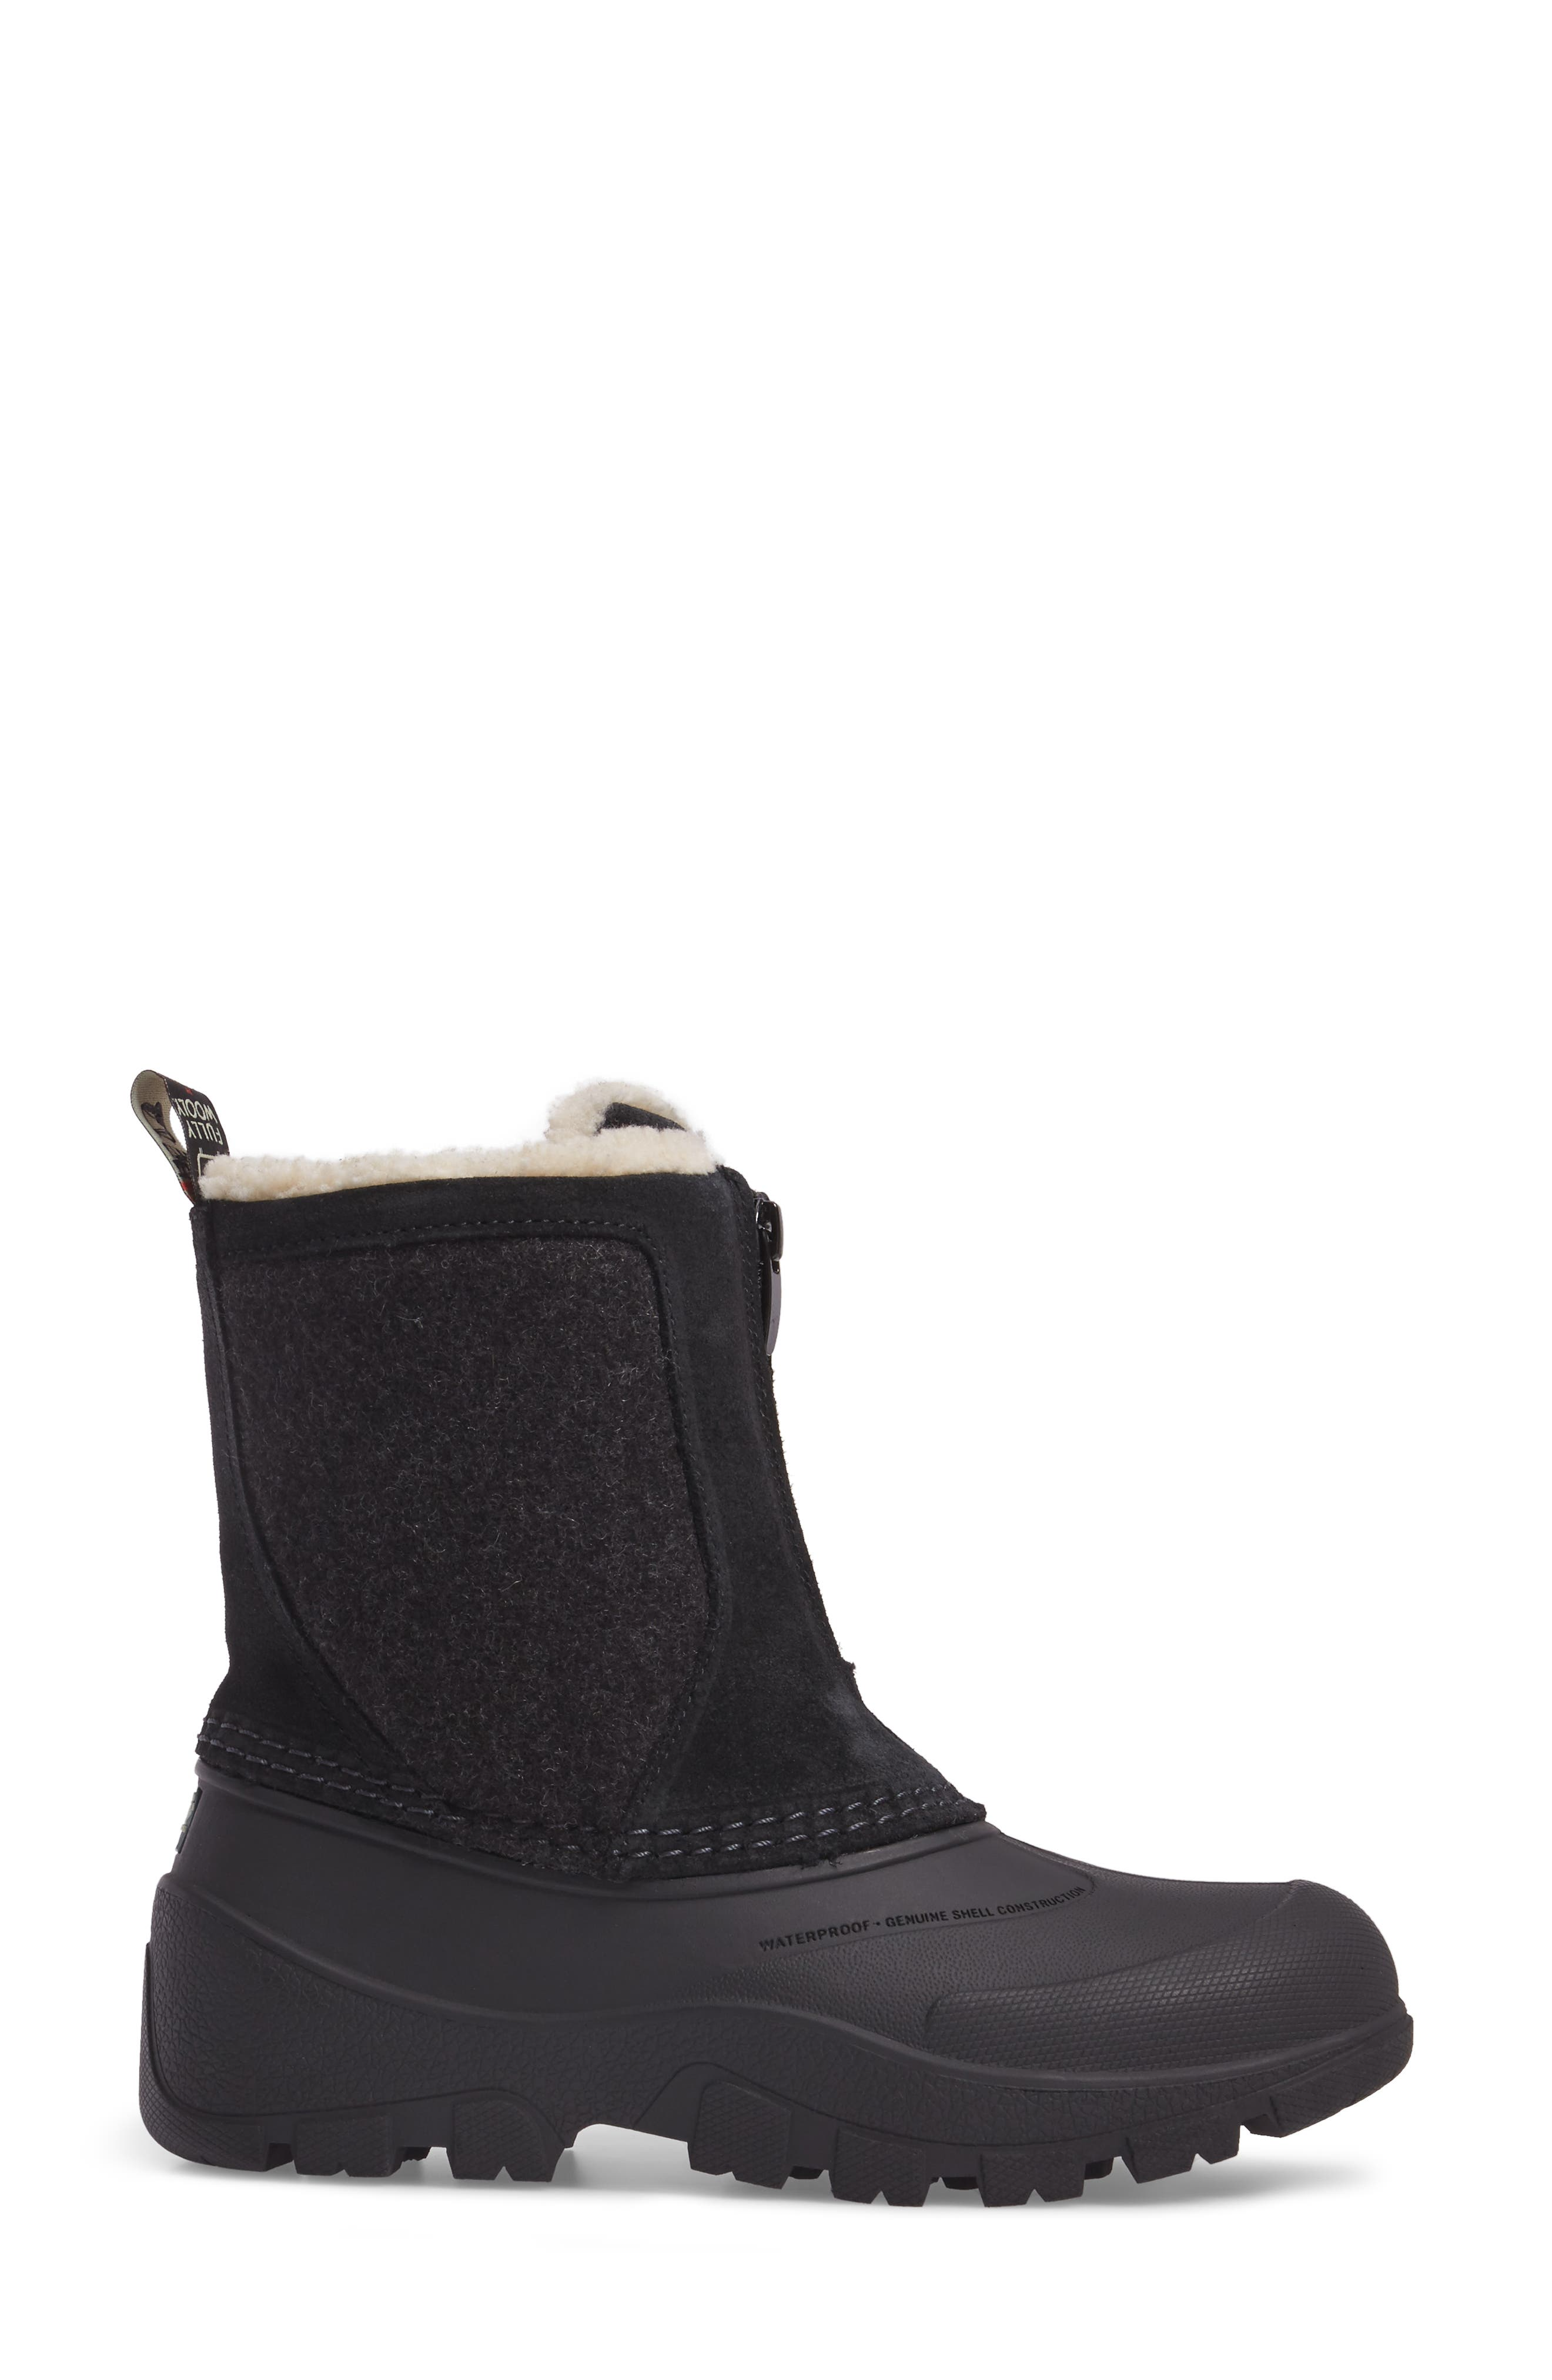 Fully Wooly Icecat Waterproof Insulated Winter Boot,                             Alternate thumbnail 3, color,                             001